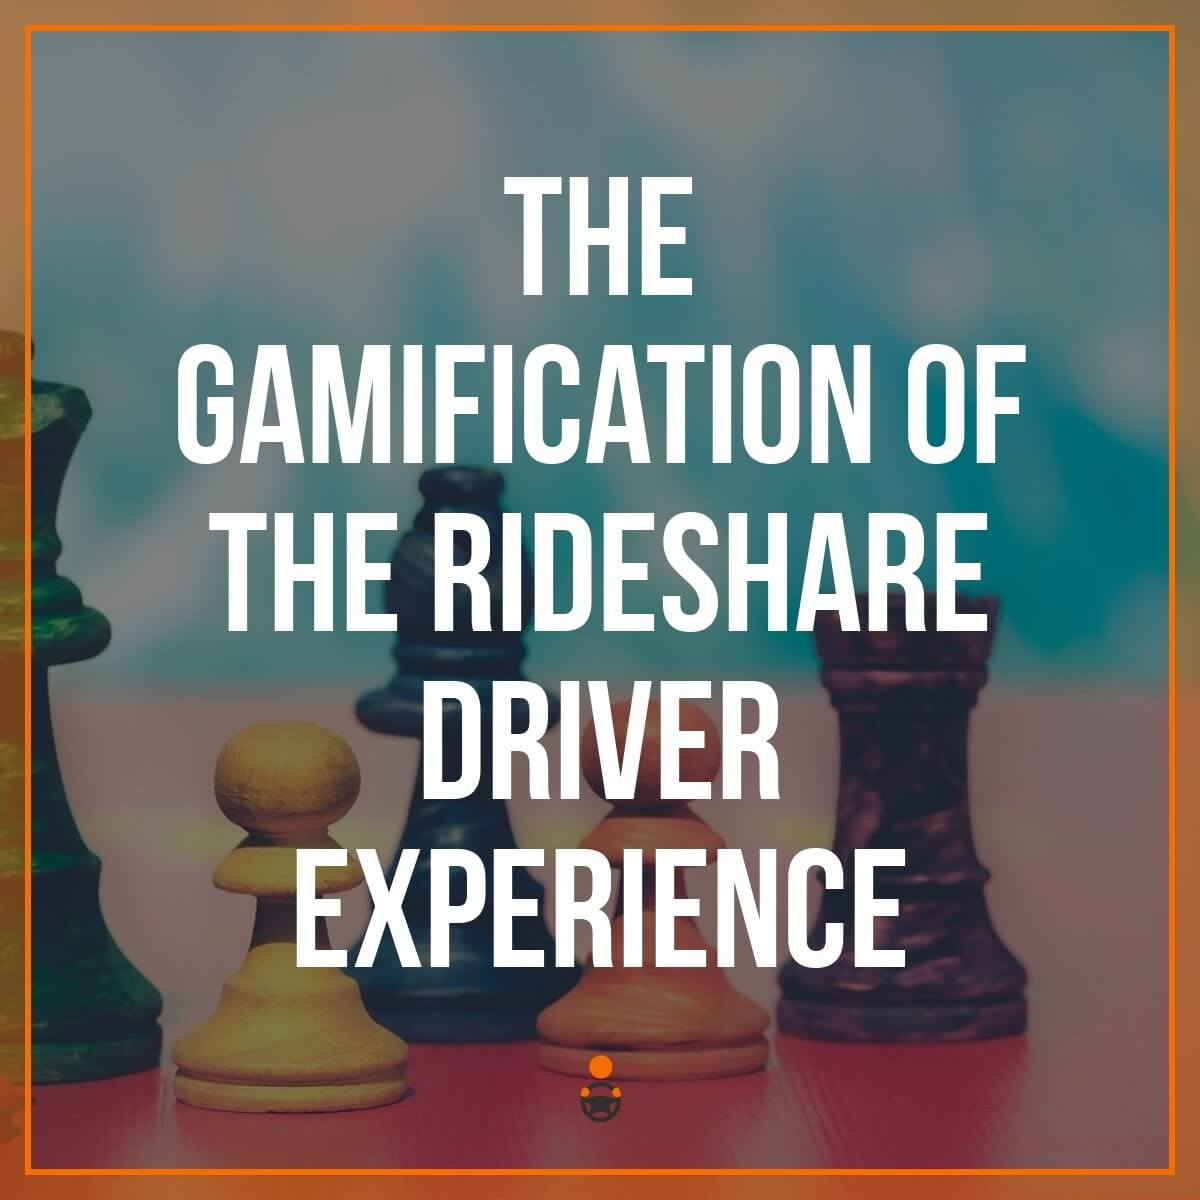 The Gamification of the Rideshare Driver Experience